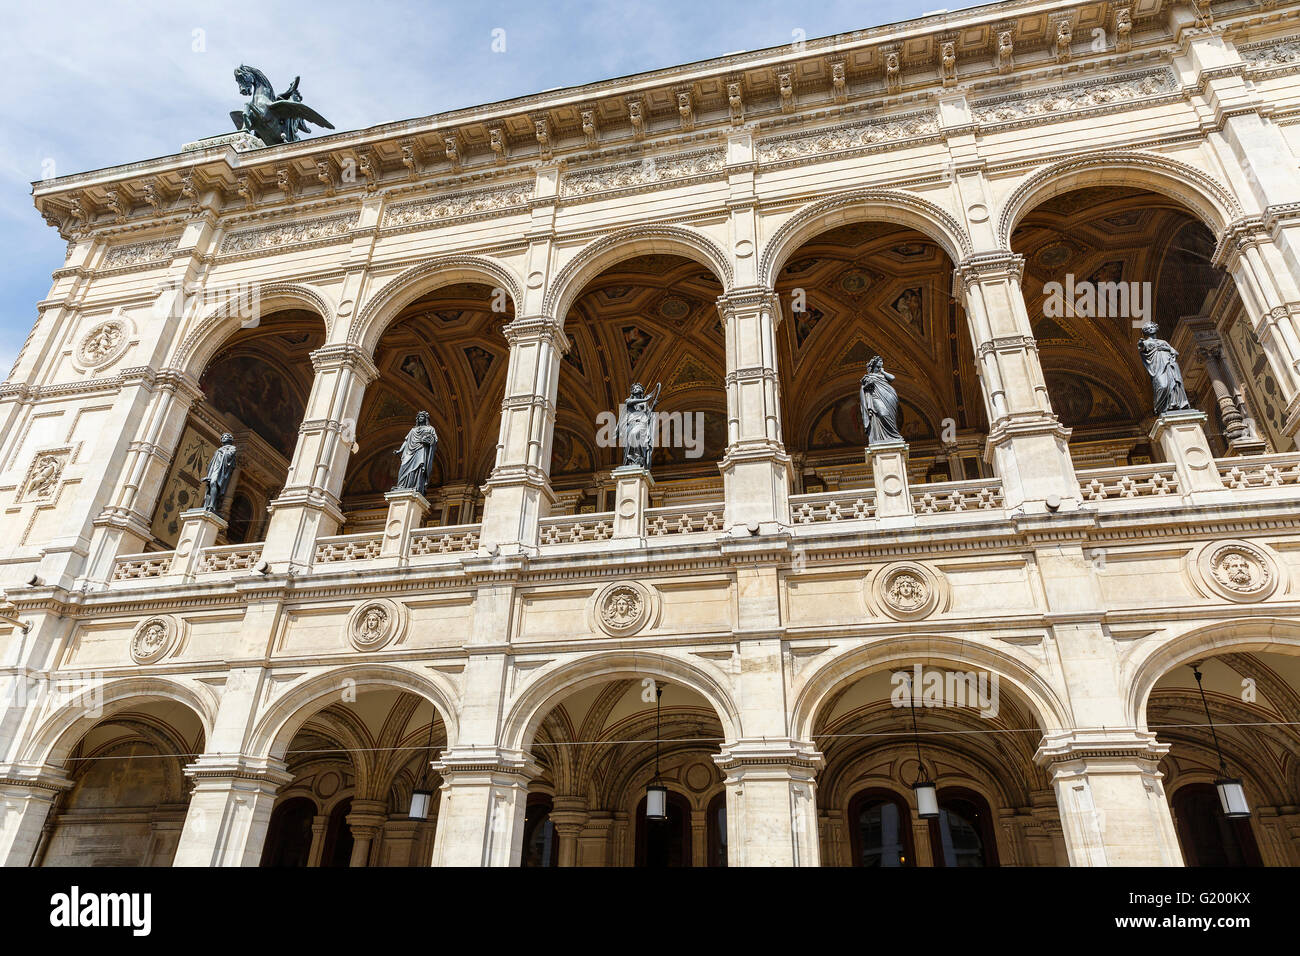 Statues adorn the building of the Vienna State Opera - Stock Image